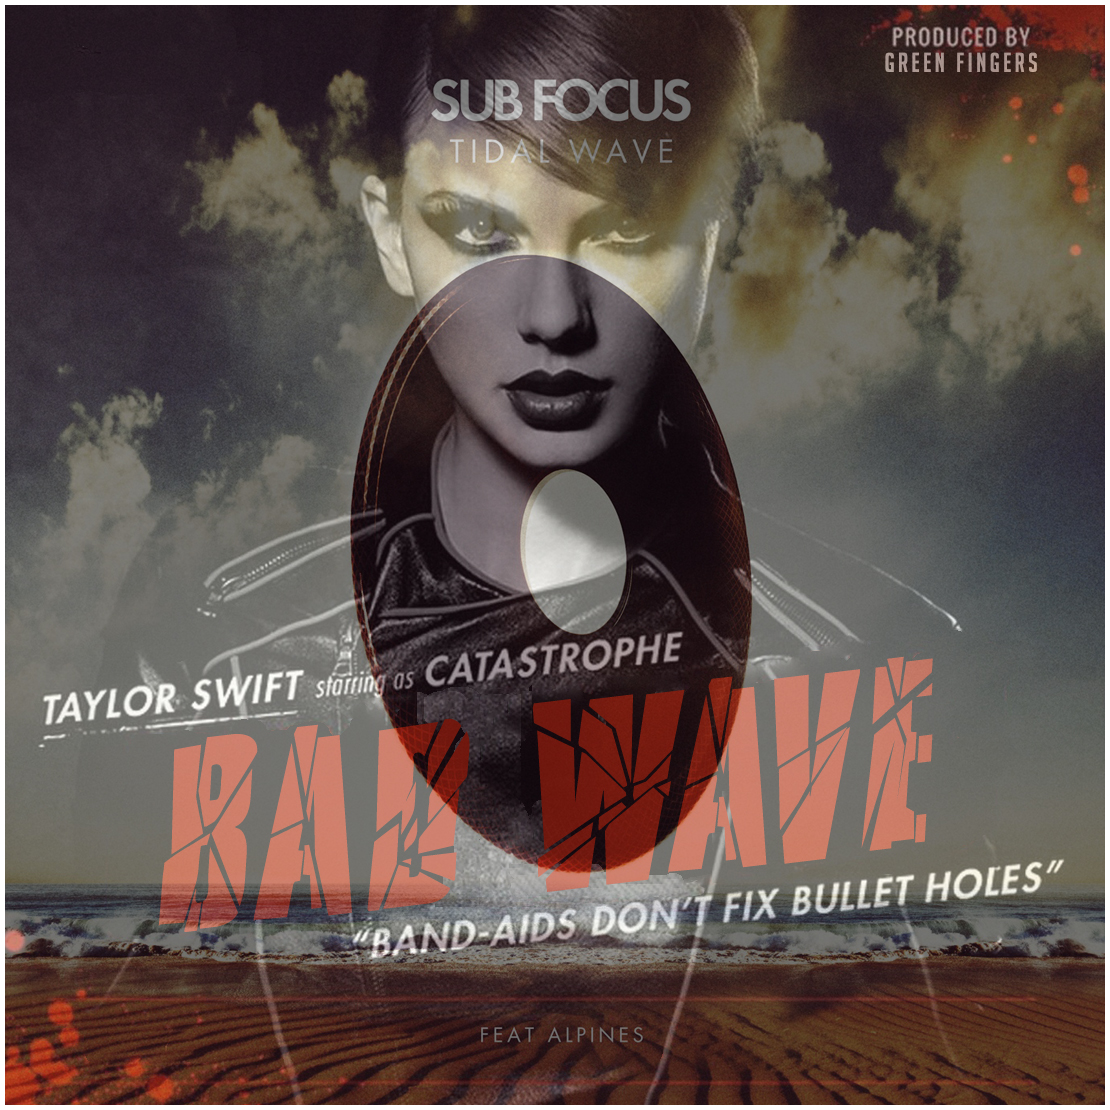 Taylor Swift vs Sub Focus cover